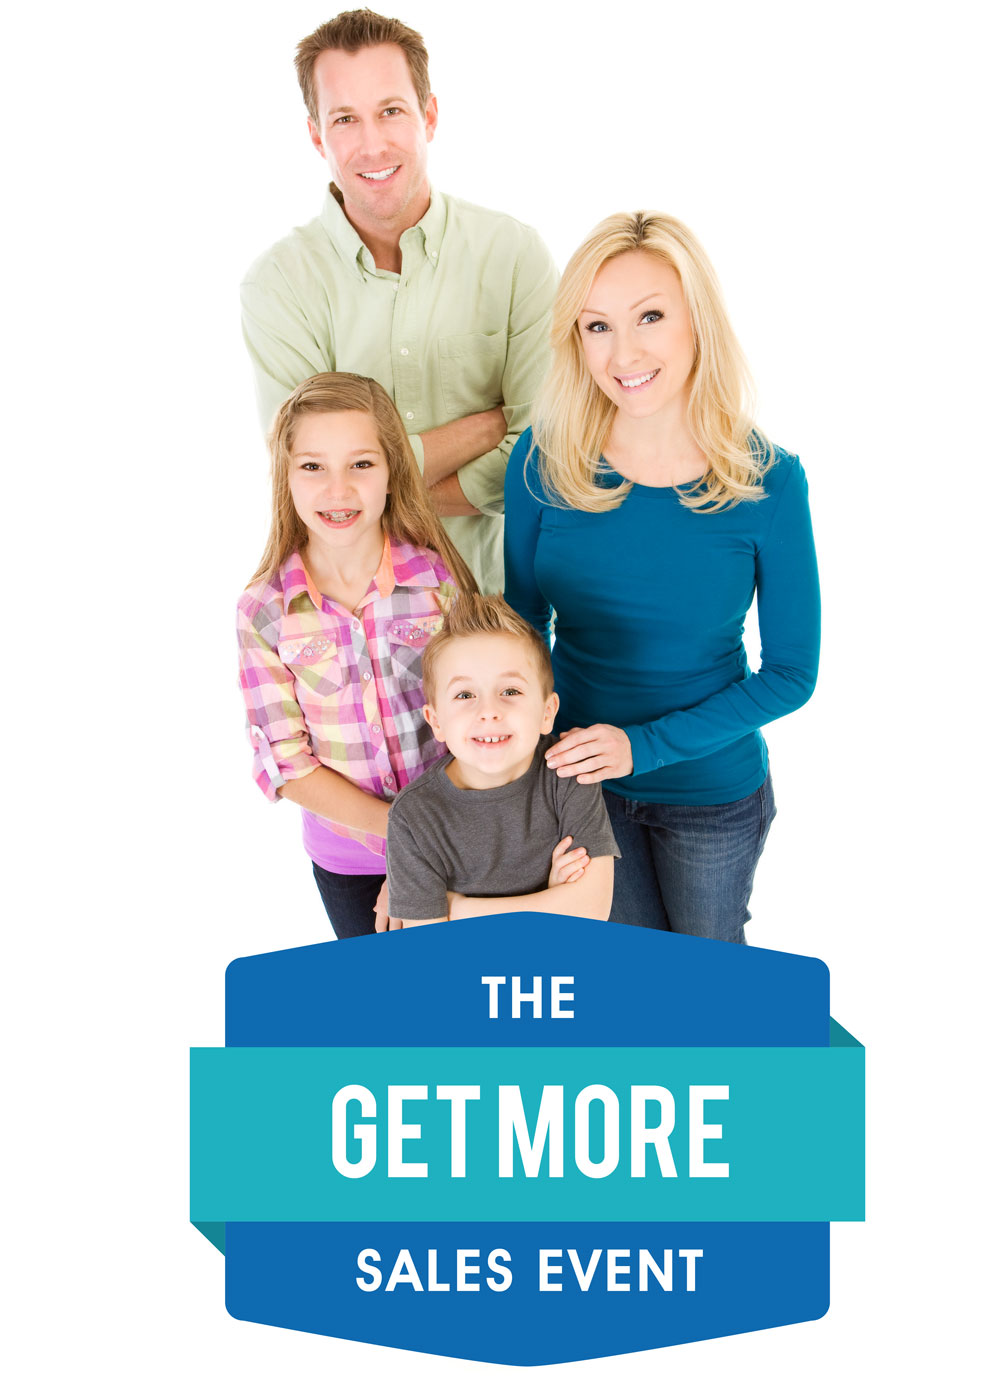 The Get More Sales Event